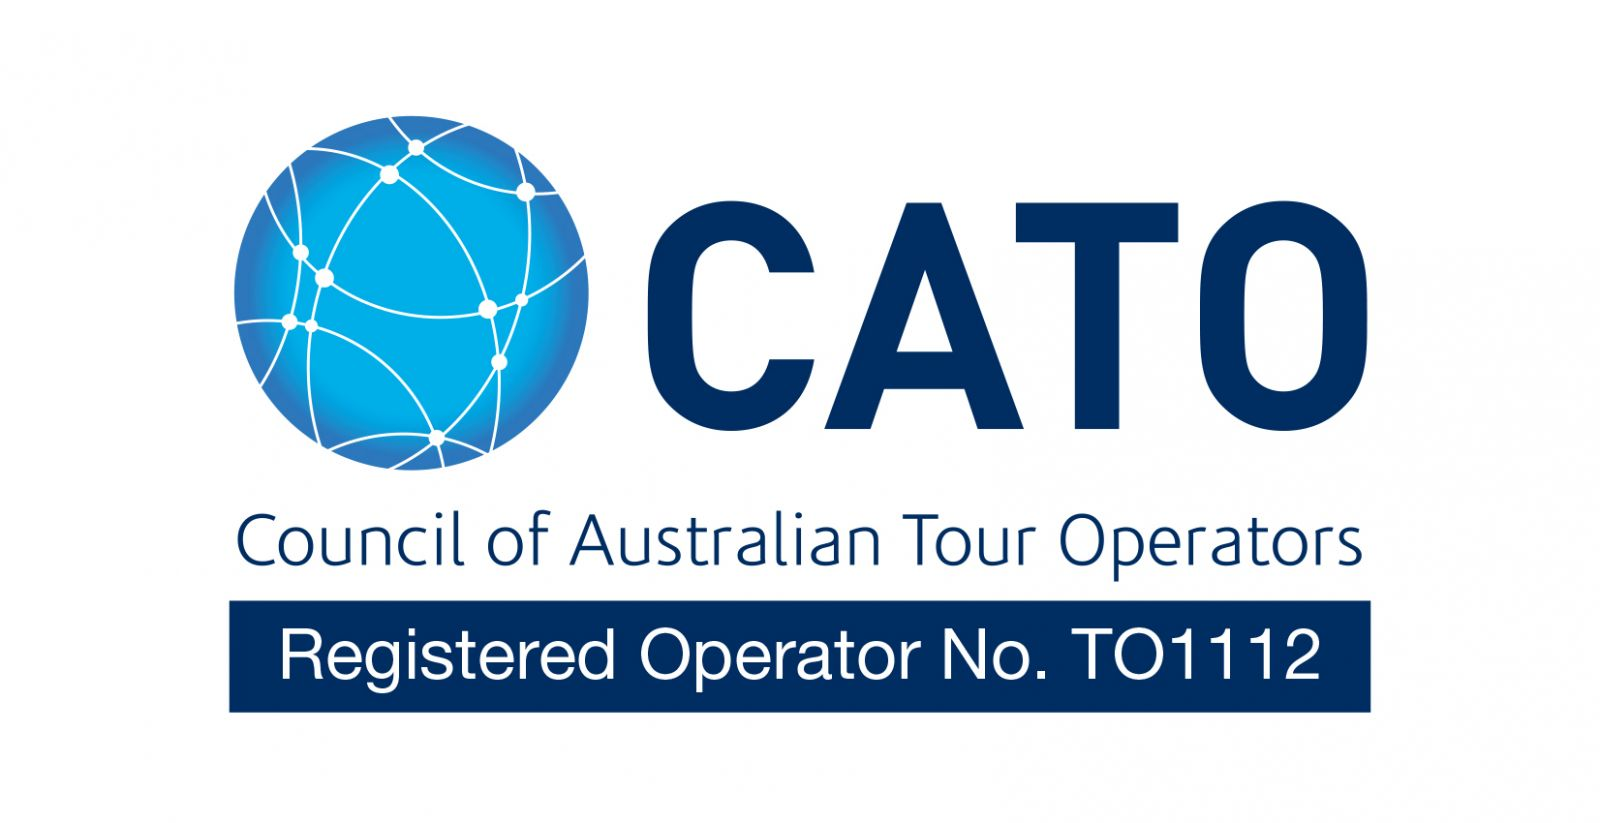 CATO Registered Operator